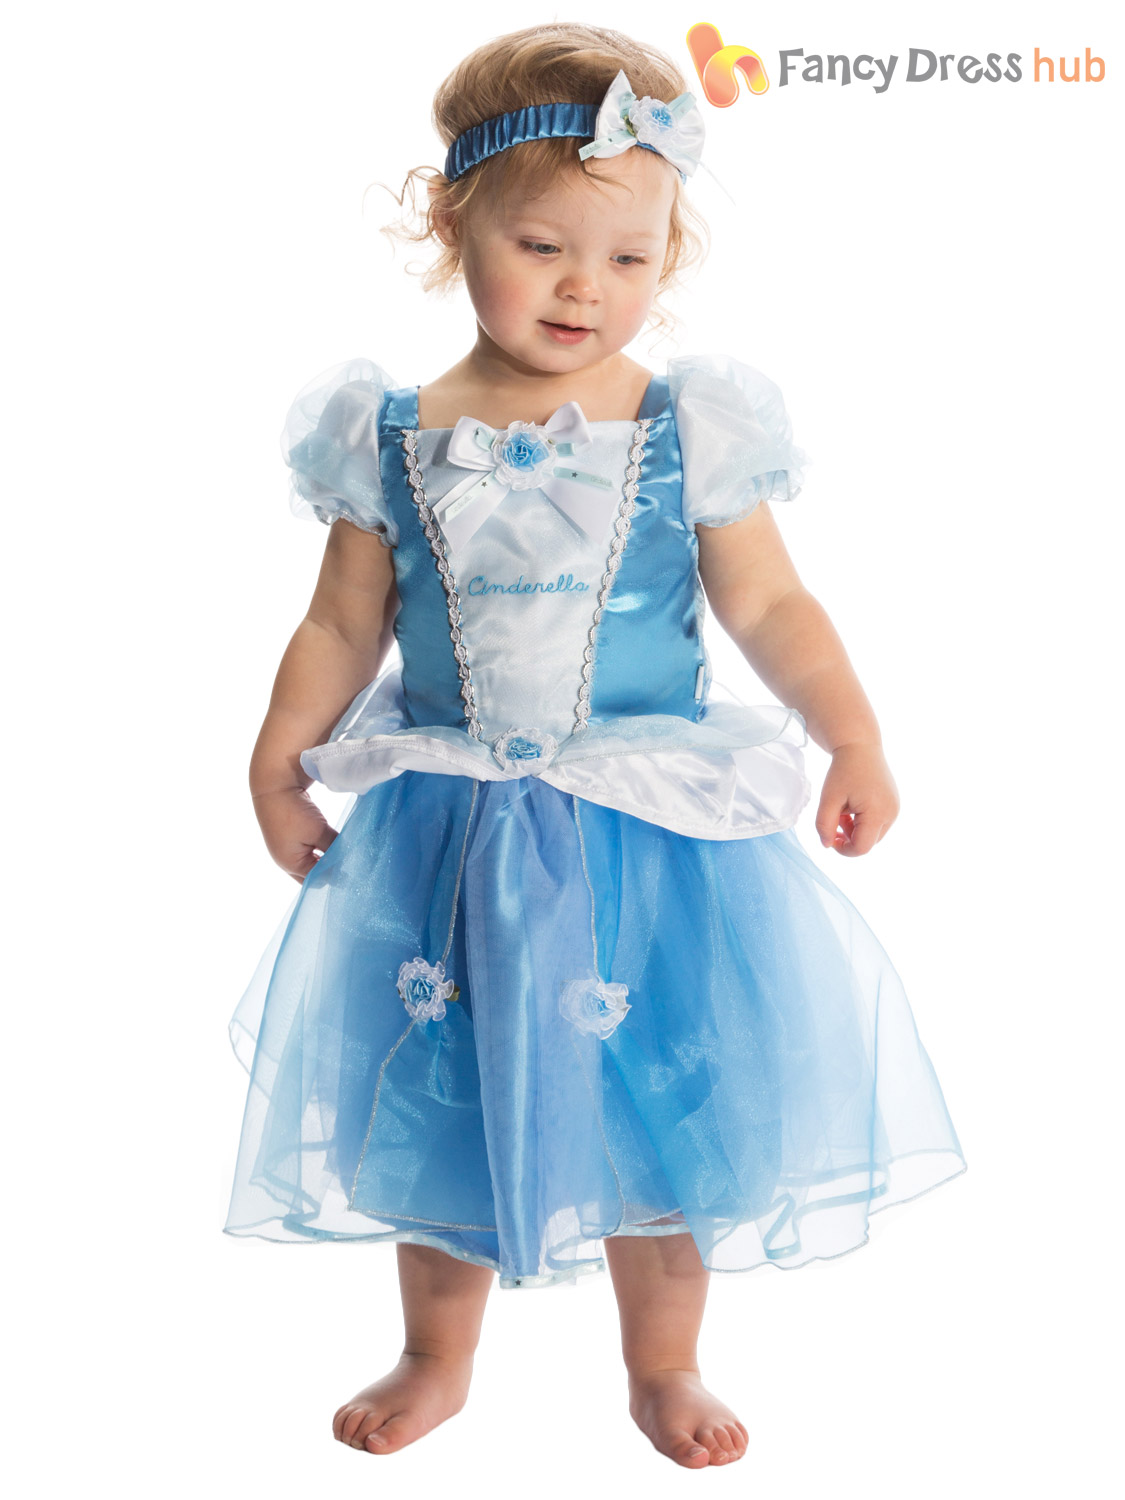 Dress up of princess - Baby Toddler Deluxe Disney Princess Costume Girl Fairytale